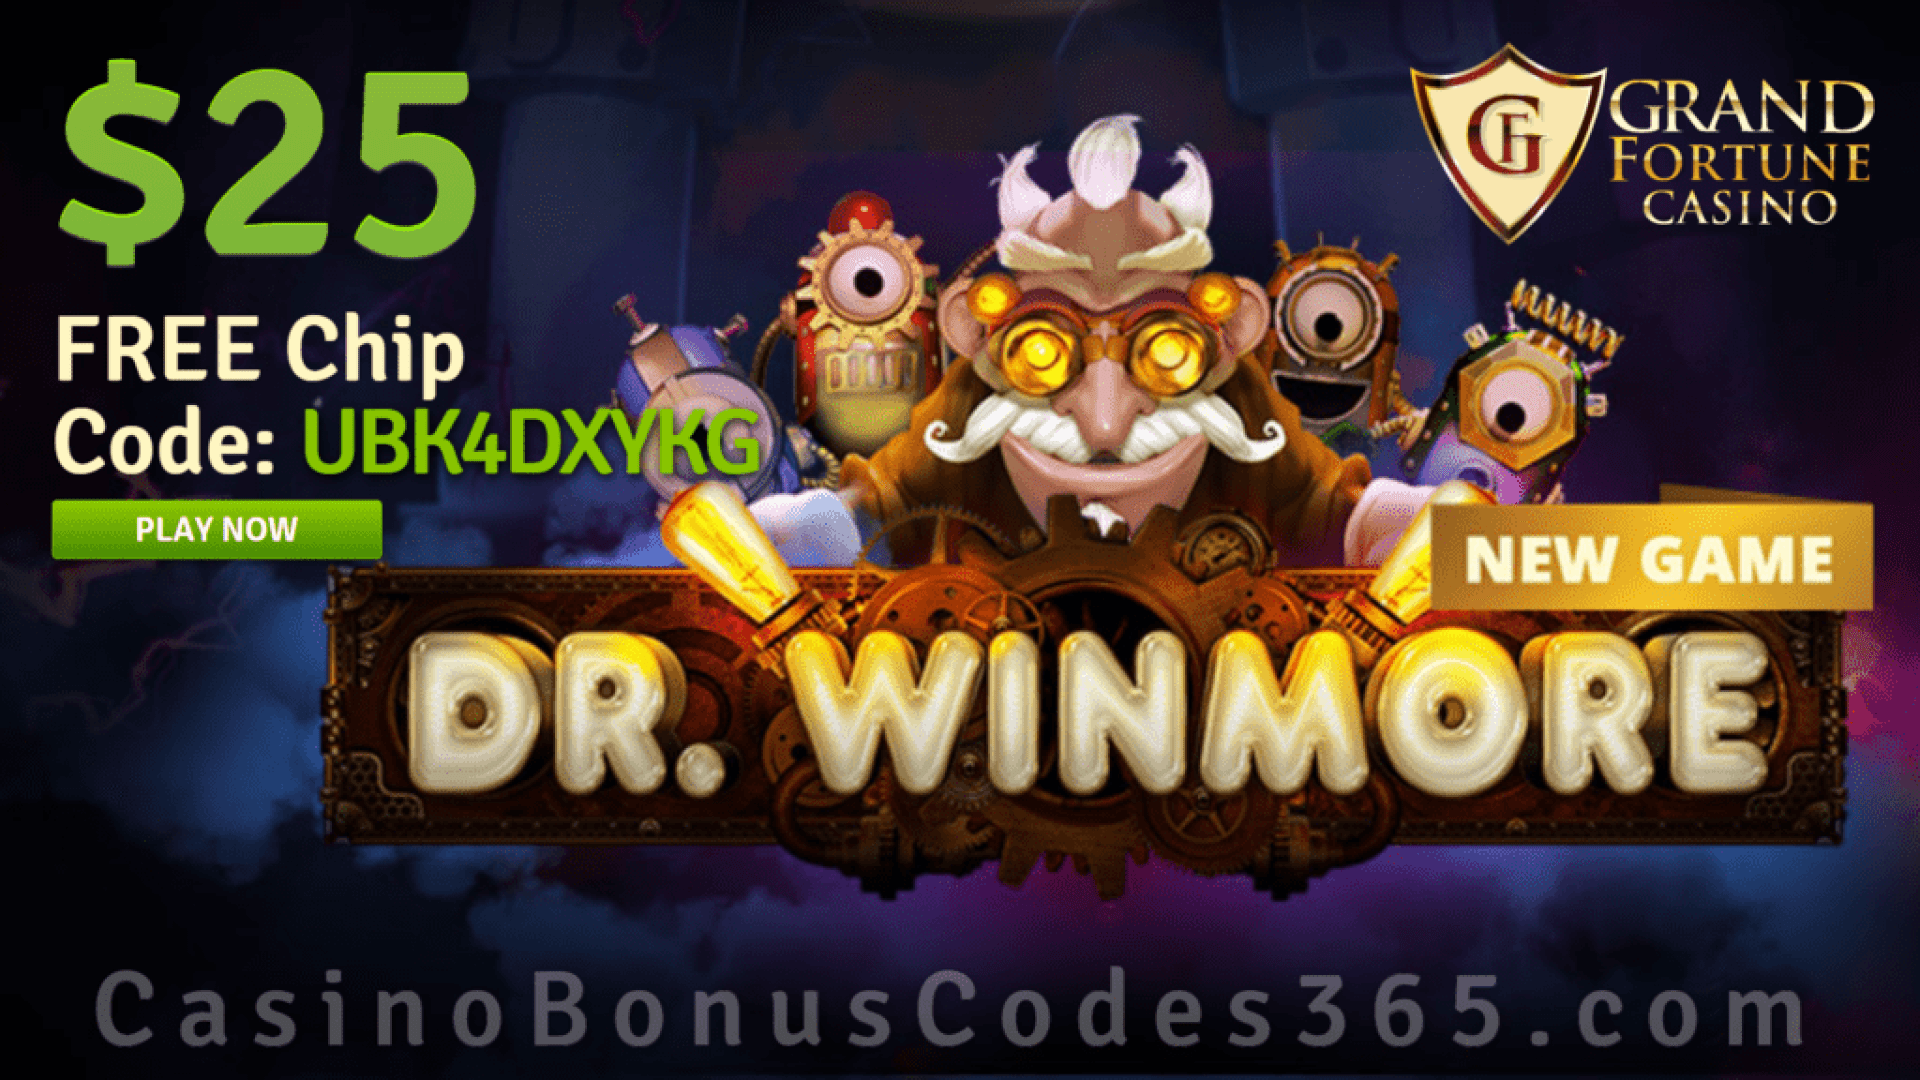 Grand Fortune Casino New RTG Game Dr. Winmore $25 FREE Chip No Deposit Deal